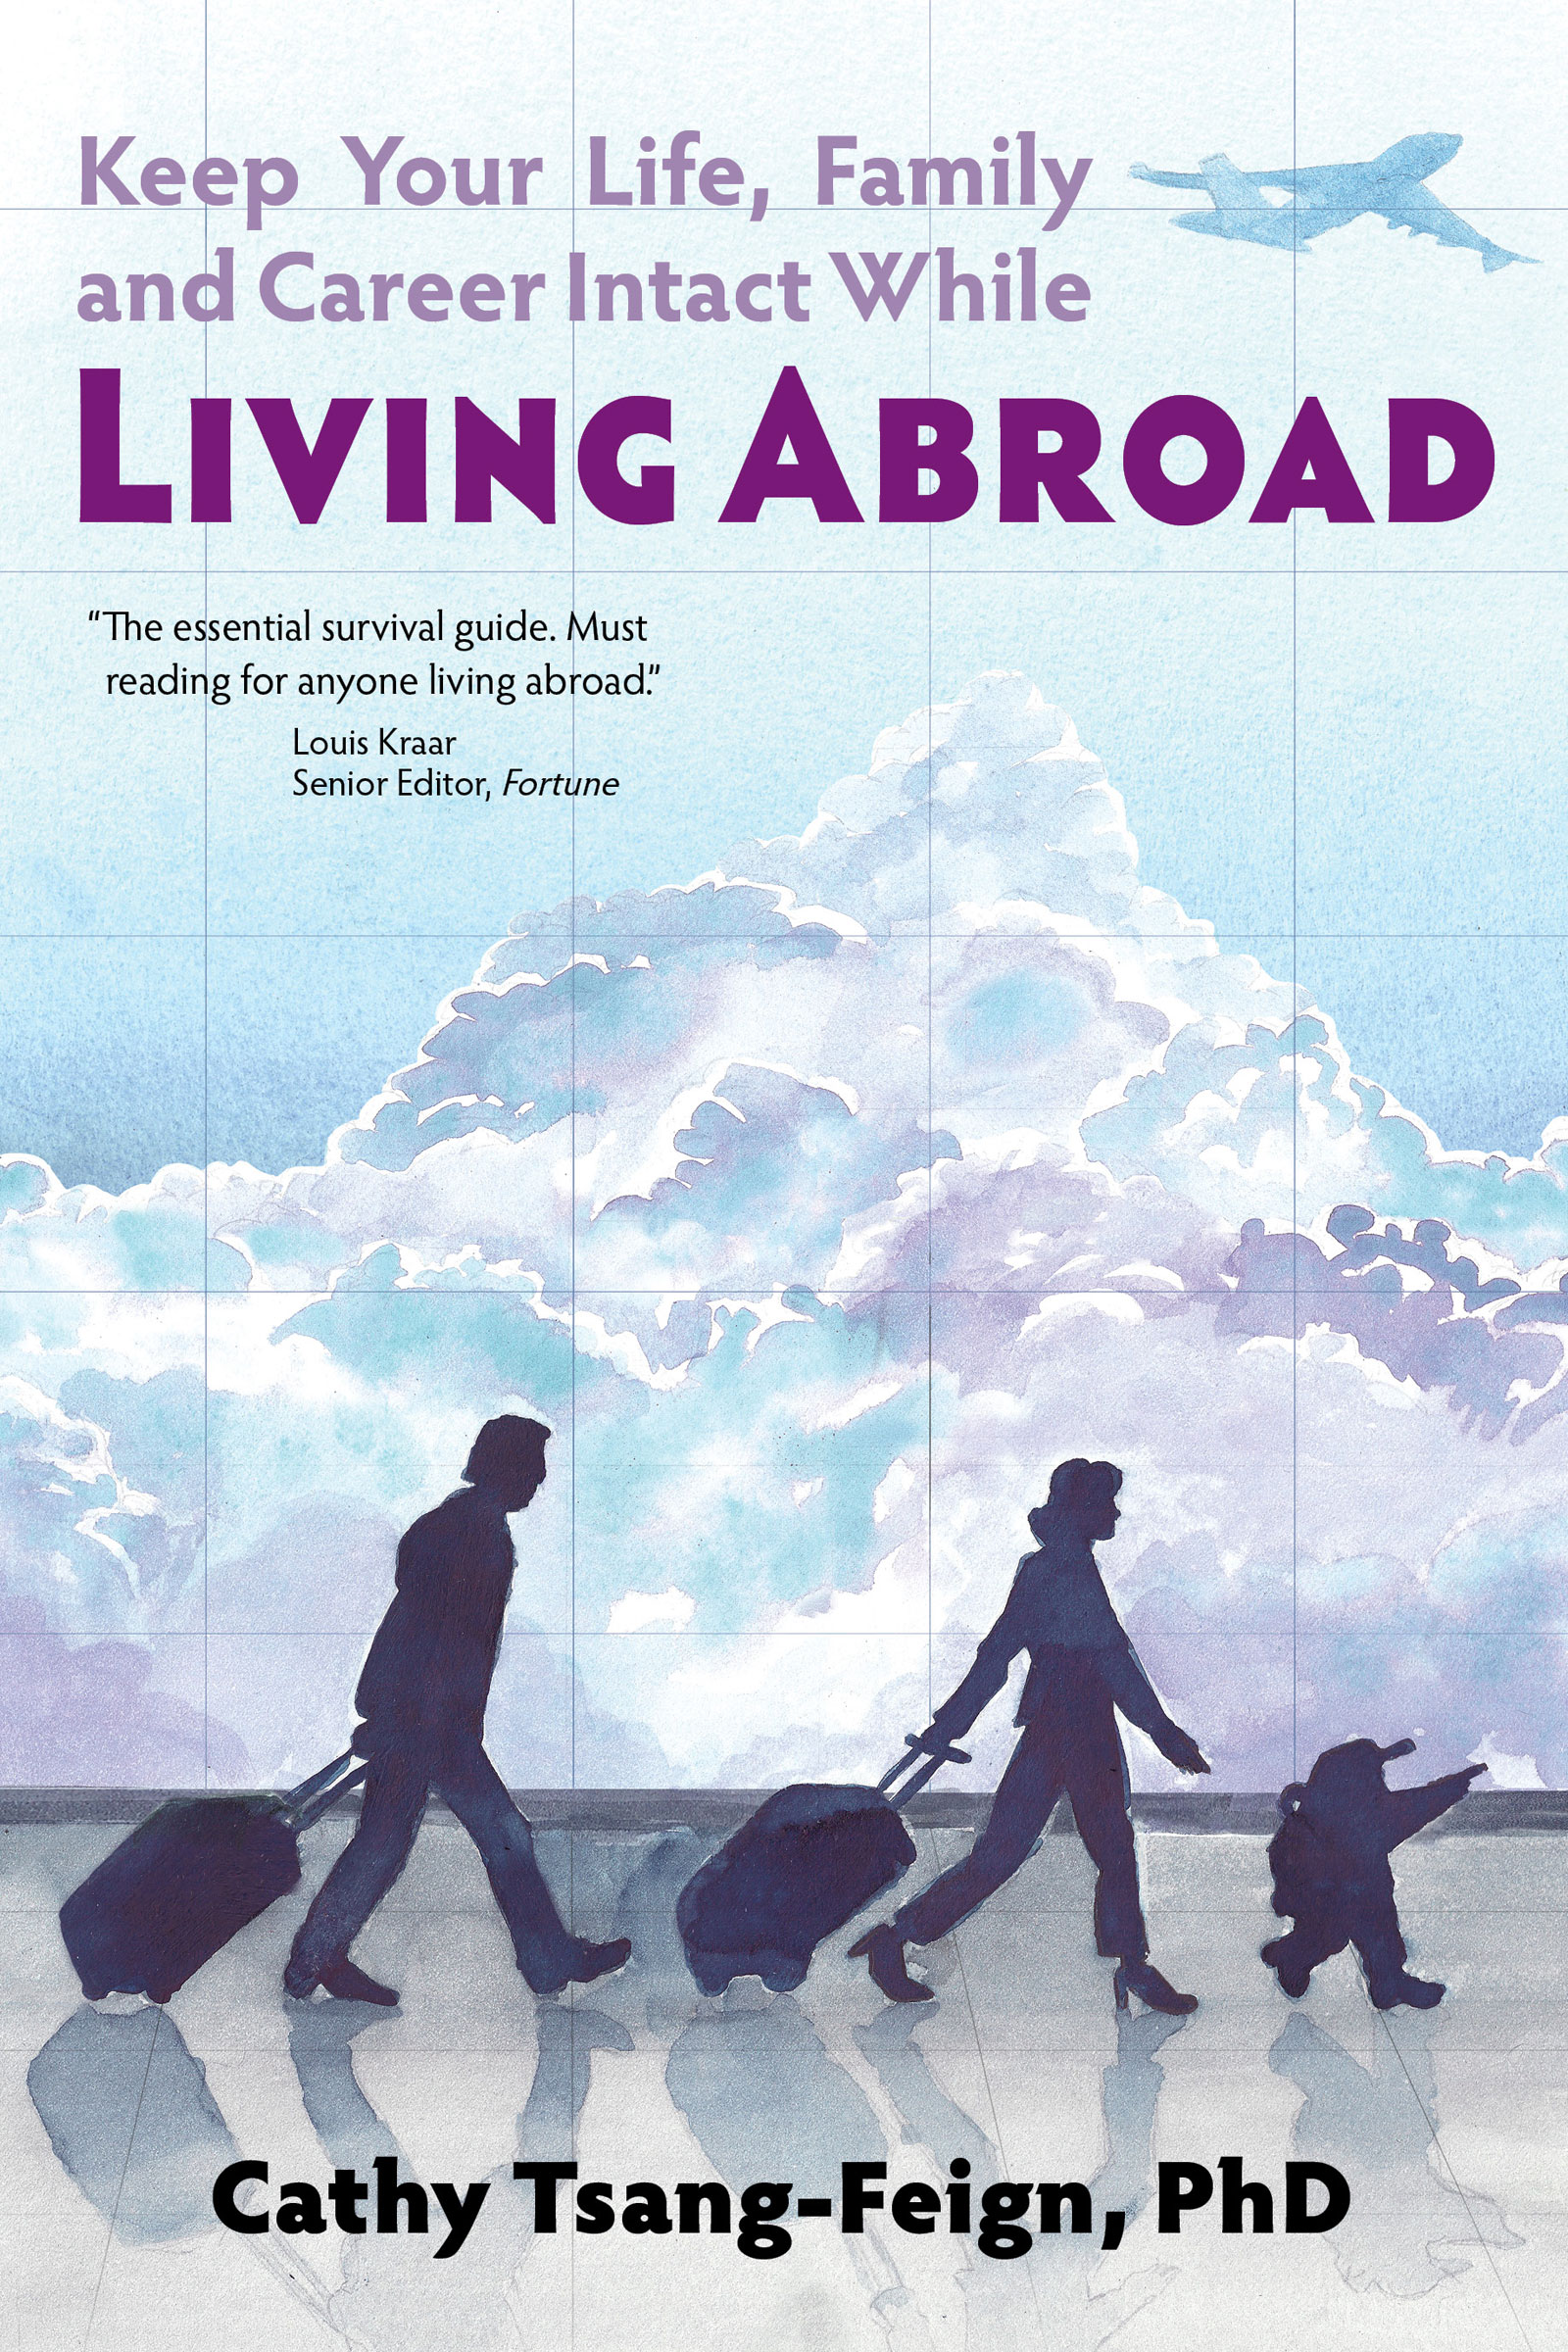 Living Abroad: How to handle culture shock, foreign affairs, third culture  kids, frequent travel, and other issues of expatriate living, an Ebook by